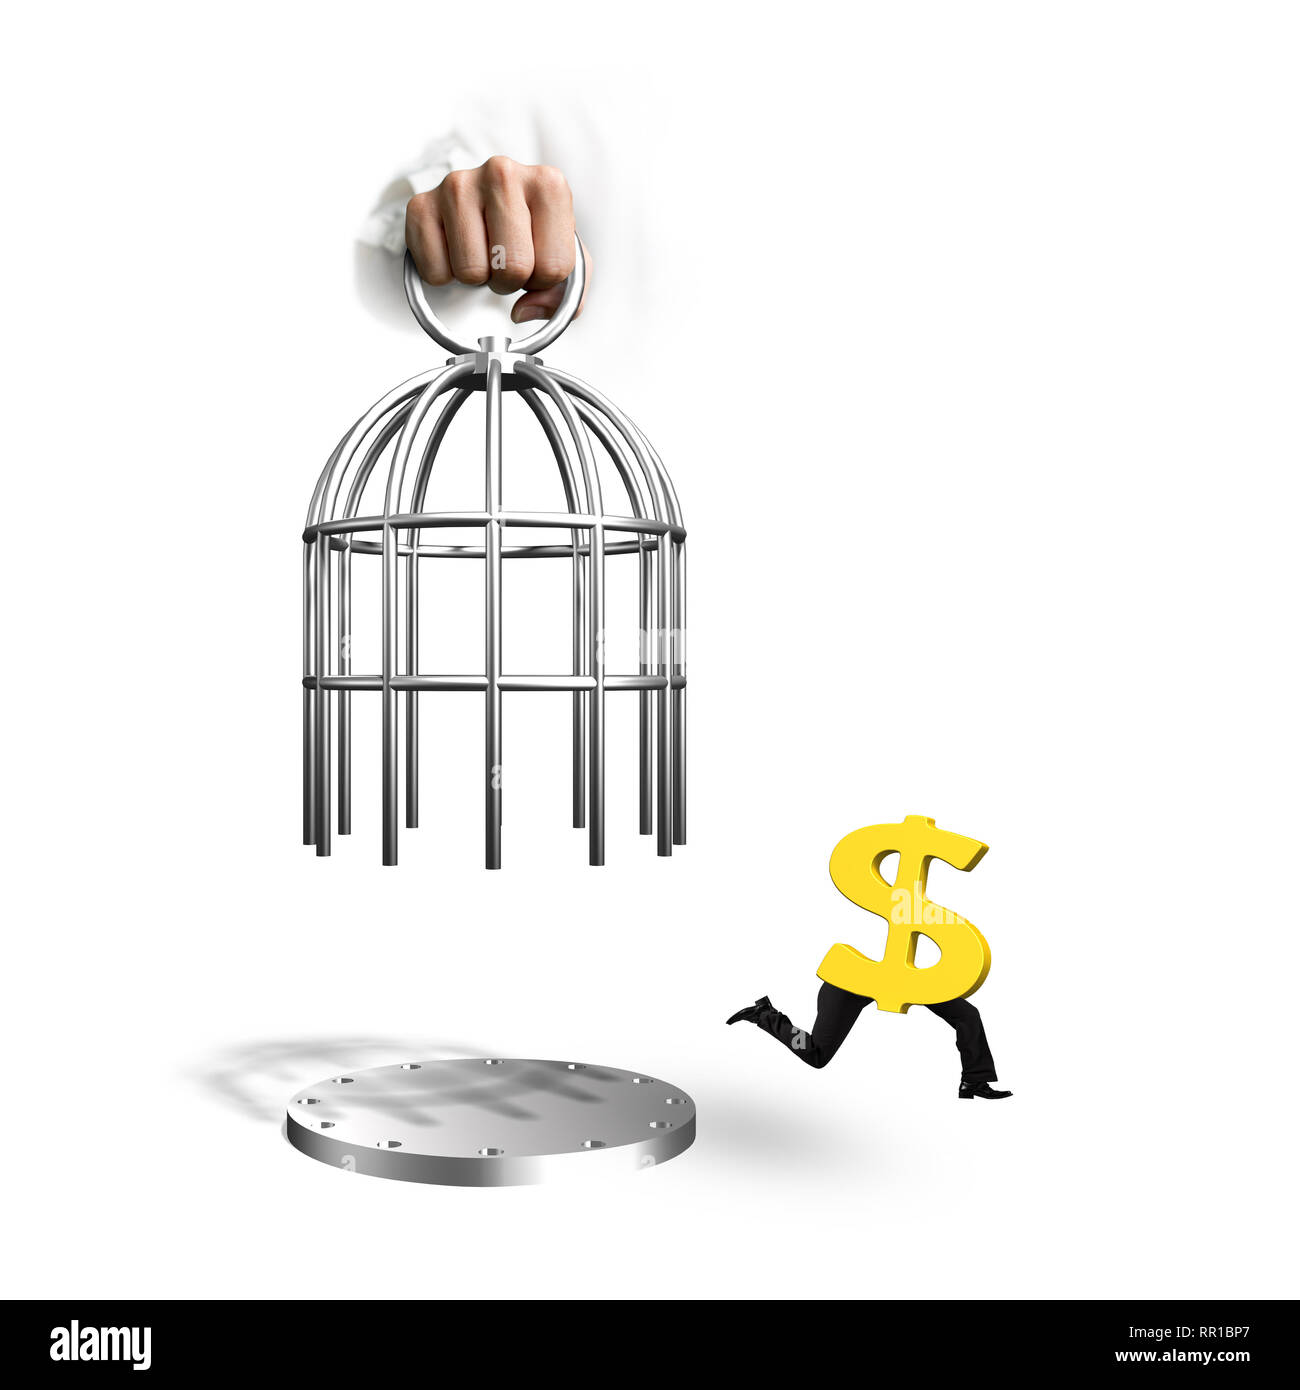 Hand opening the cage and golden dollar sign with human legs running, isolated on white background. Stock Photo